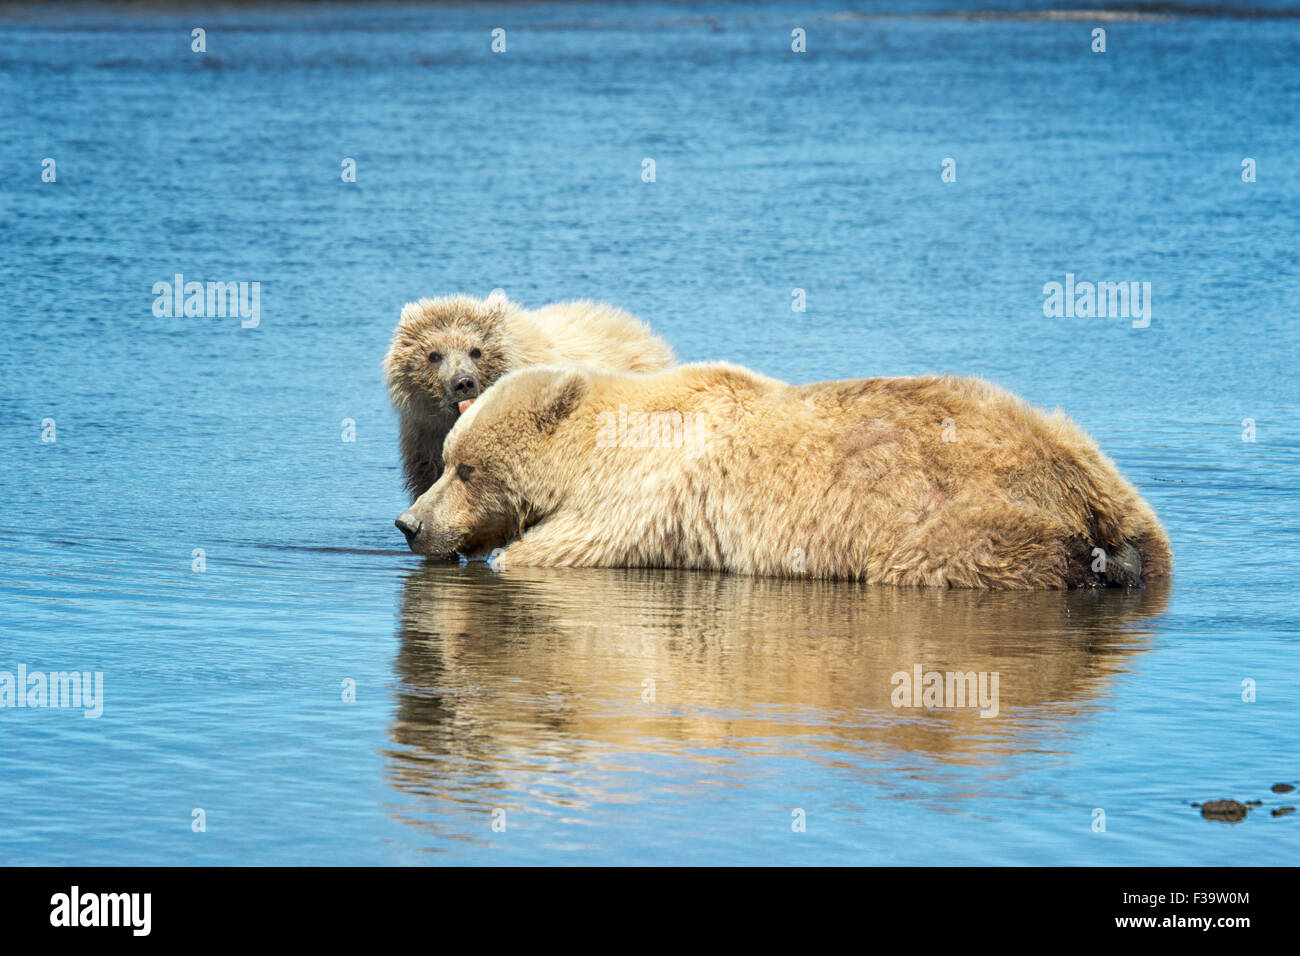 Cute Grizzly Bear Frühling Cub, Ursus Arctos, leckte seine Mutter, Lake-Clark-Nationalpark, Alaska, USA Stockbild